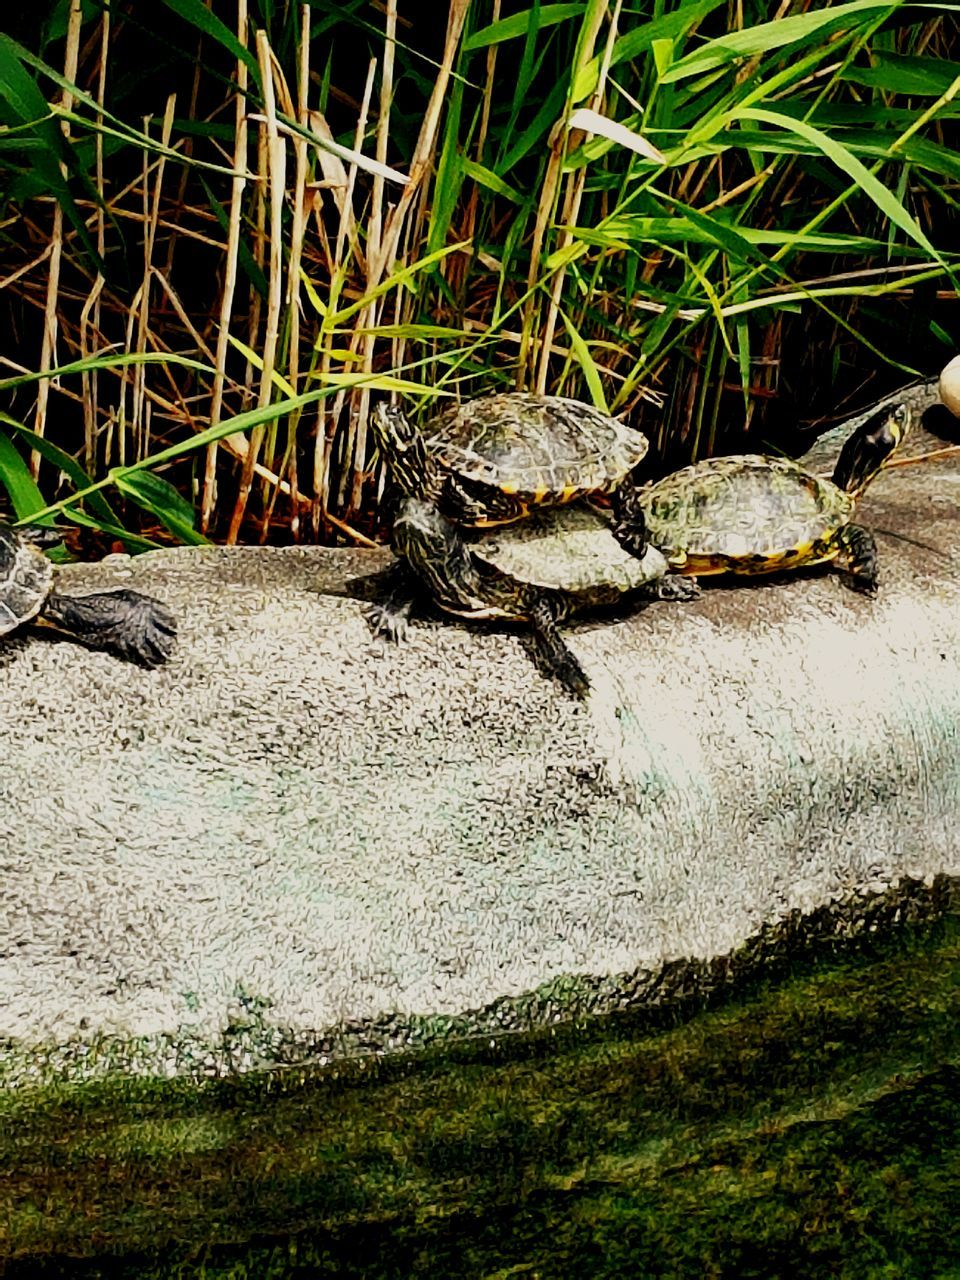 animal themes, reptile, one animal, animals in the wild, no people, tortoise, nature, grass, water, day, outdoors, tortoise shell, close-up